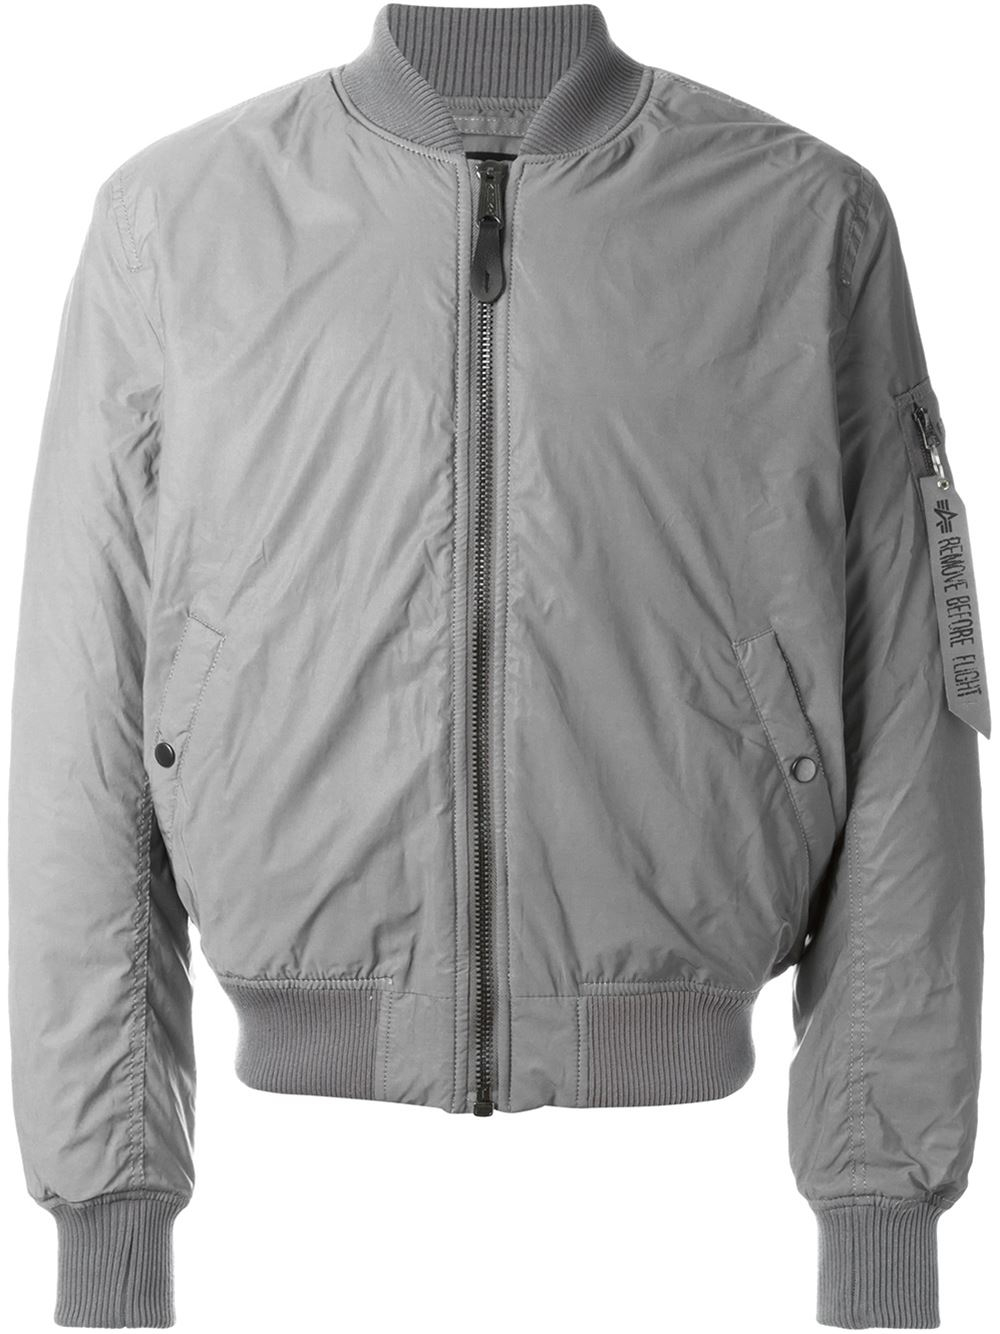 lyst alpha industries zipped bomber jacket in gray for men. Black Bedroom Furniture Sets. Home Design Ideas